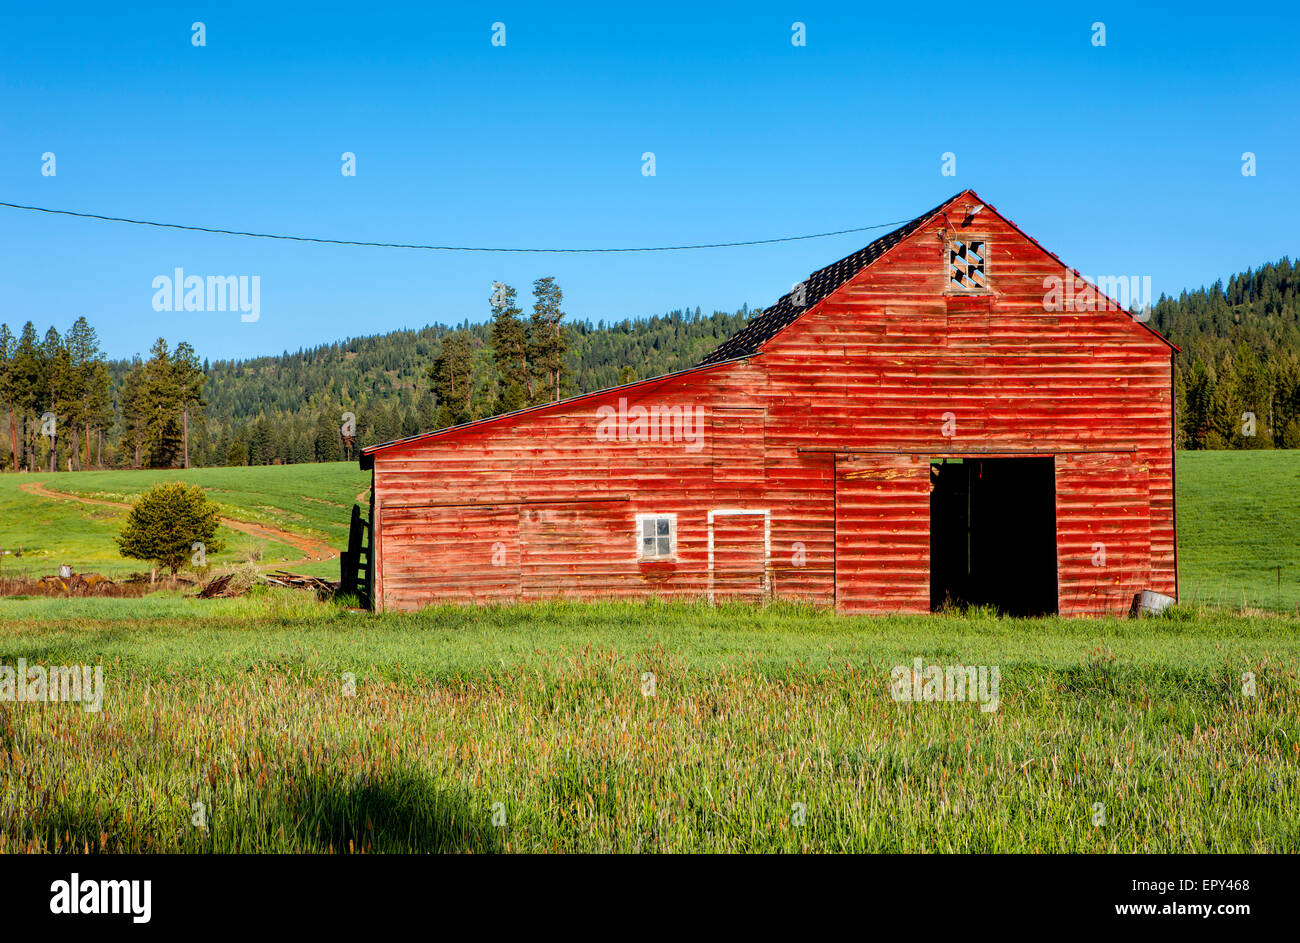 Red barn, green grass. - Stock Image